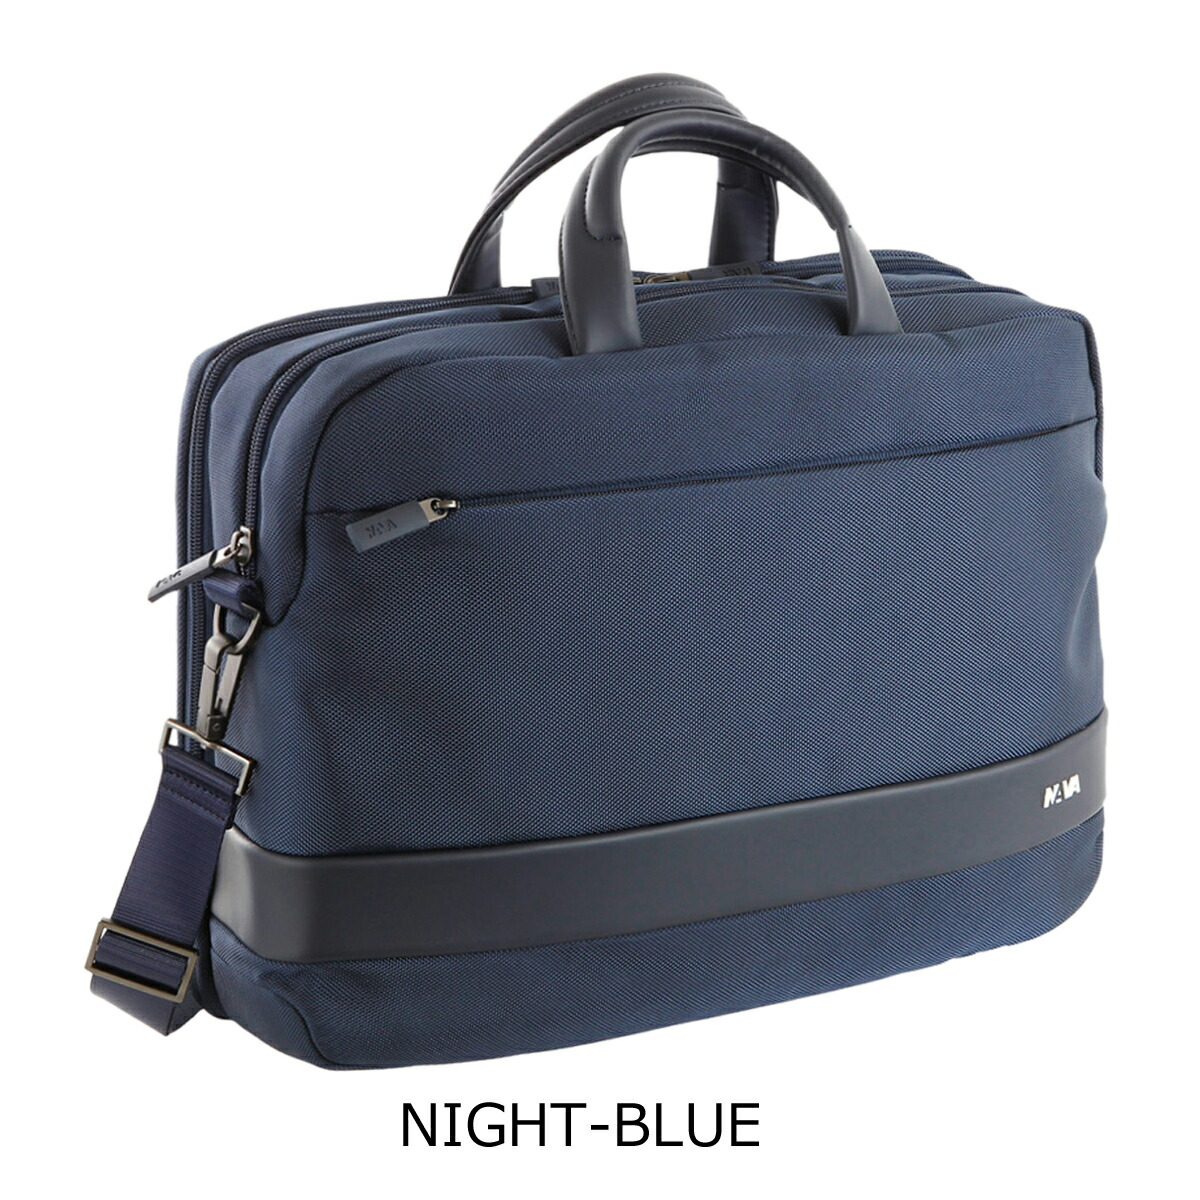 NIGHT-BLUE